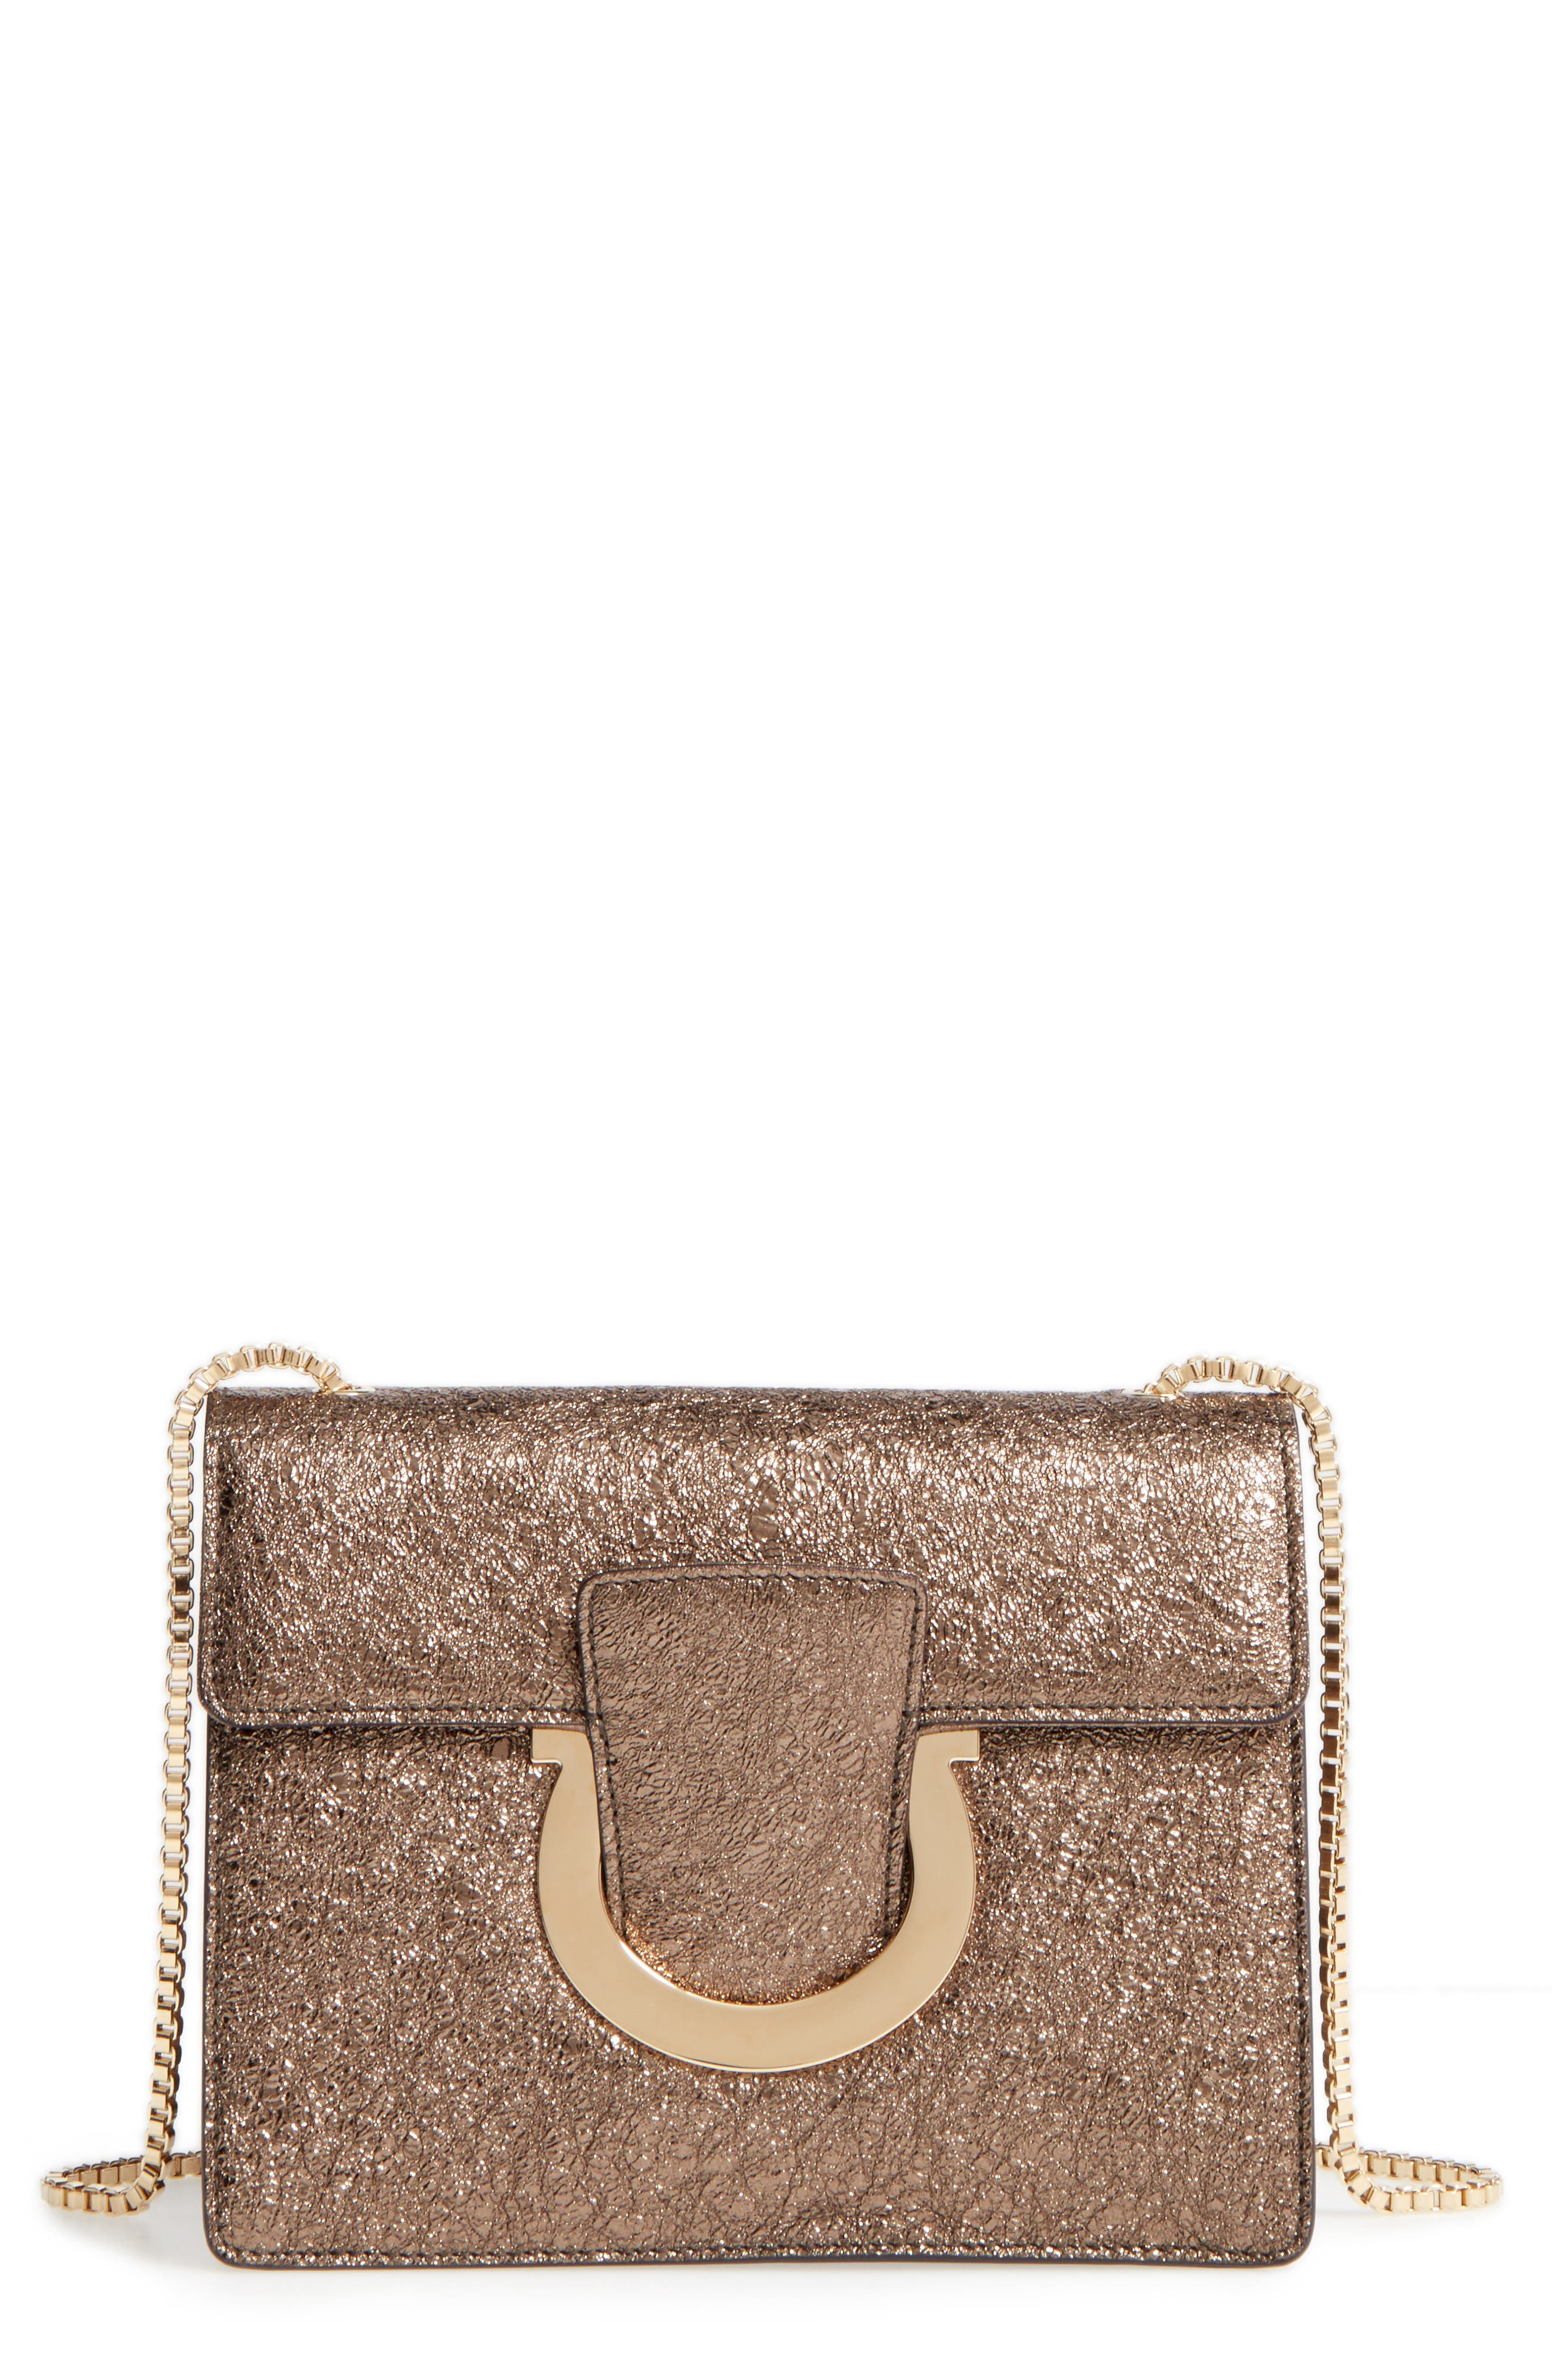 Small Metallic Leather Chain Shoulder Bag,                         Main,                         color,